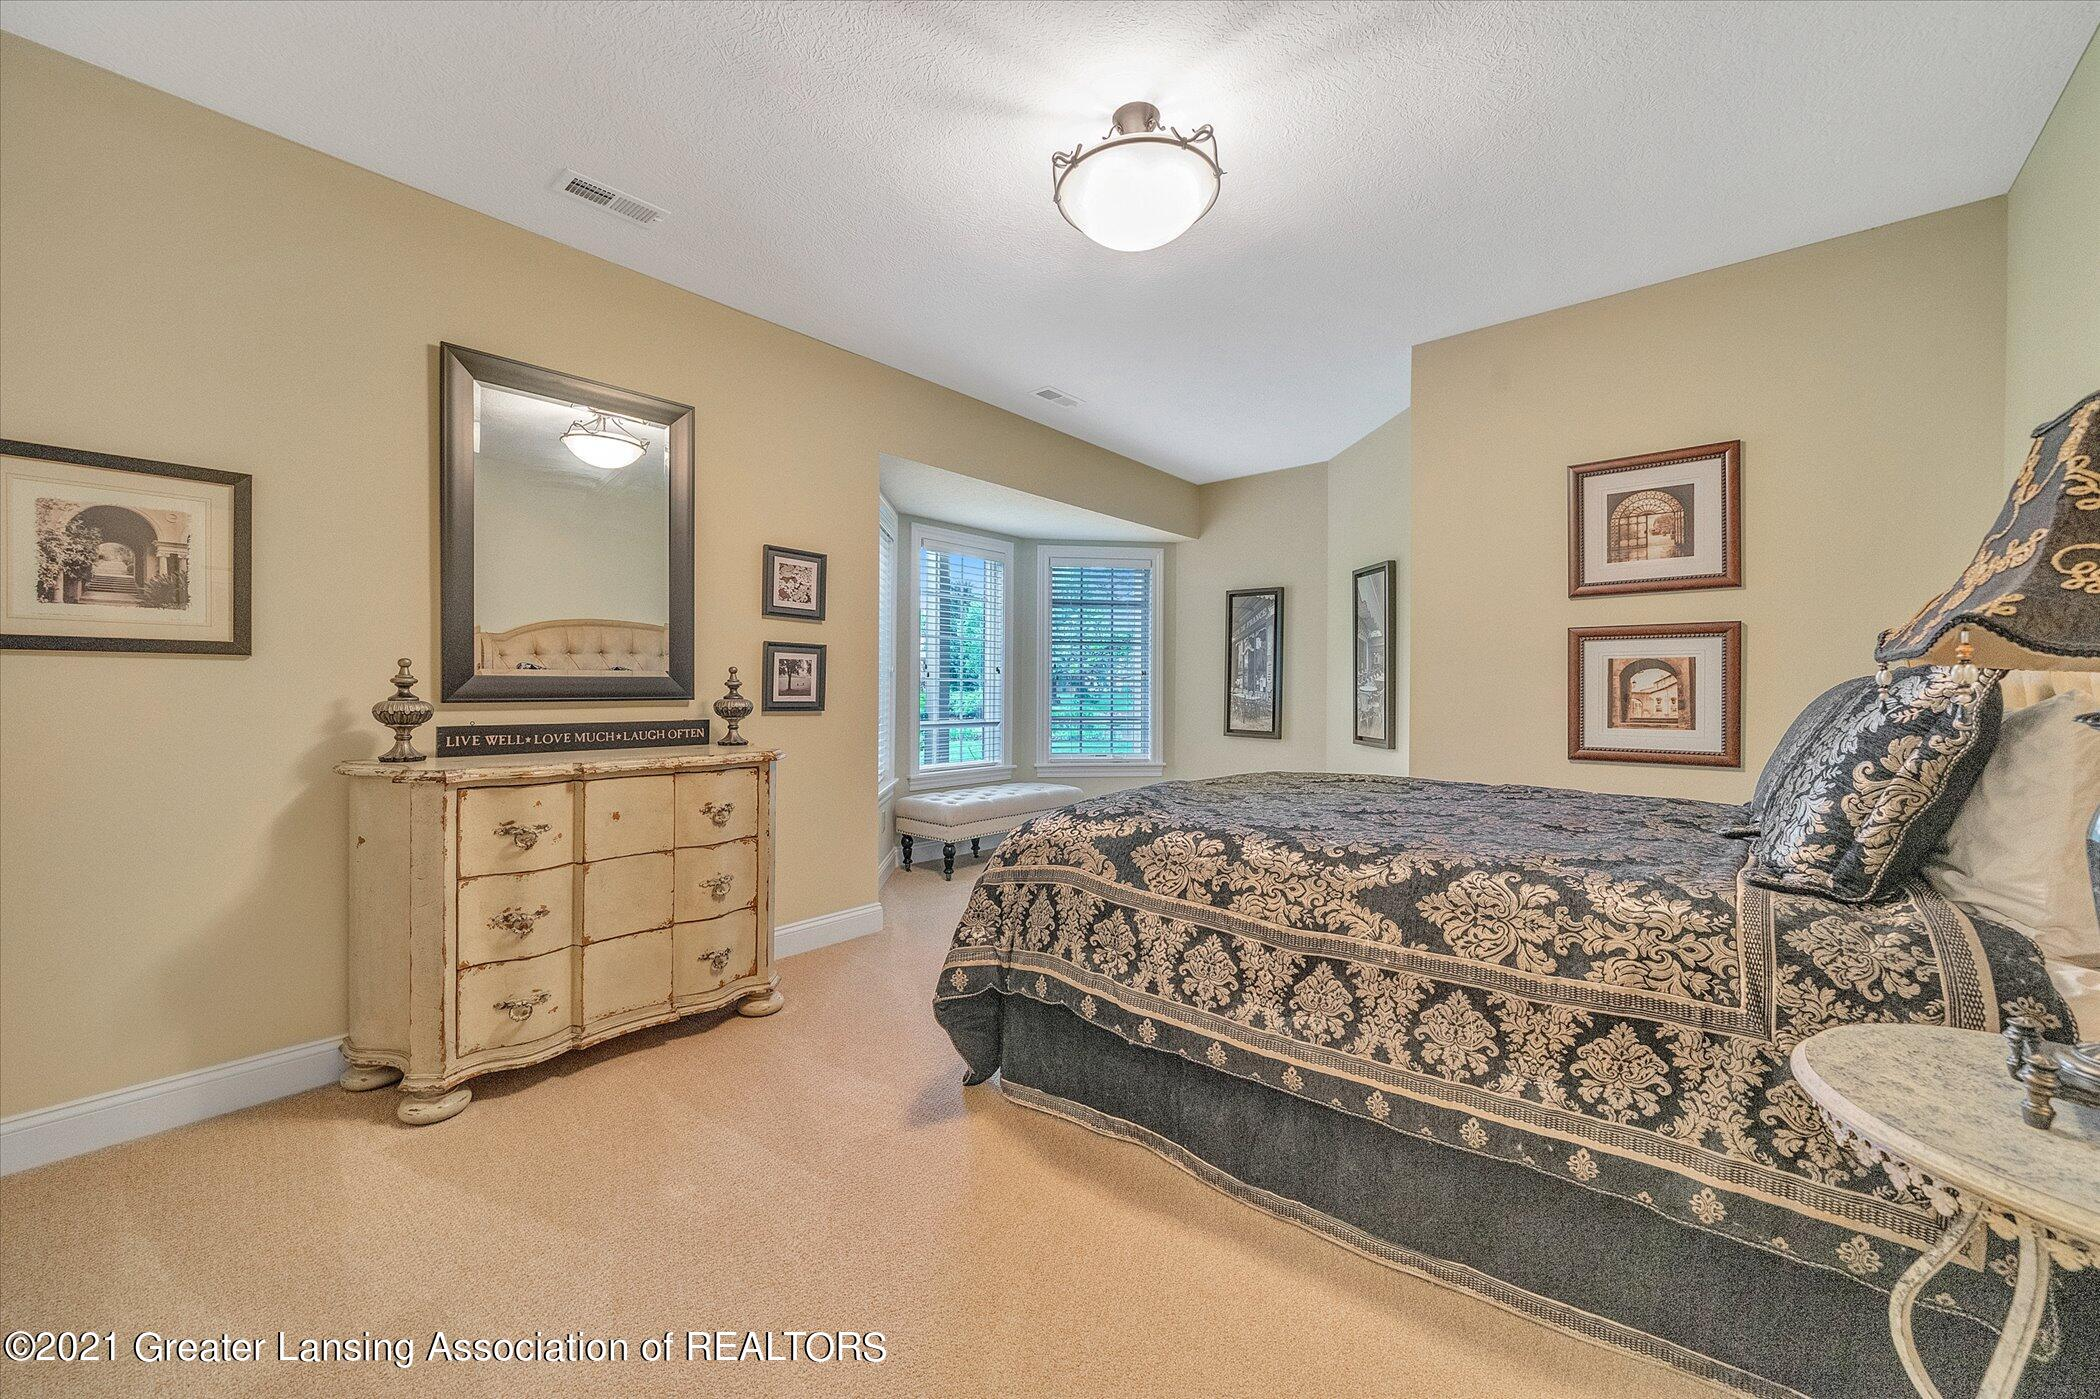 6330 Pine Hollow Dr - LOWER LEVEL Bedroom 3 - 48